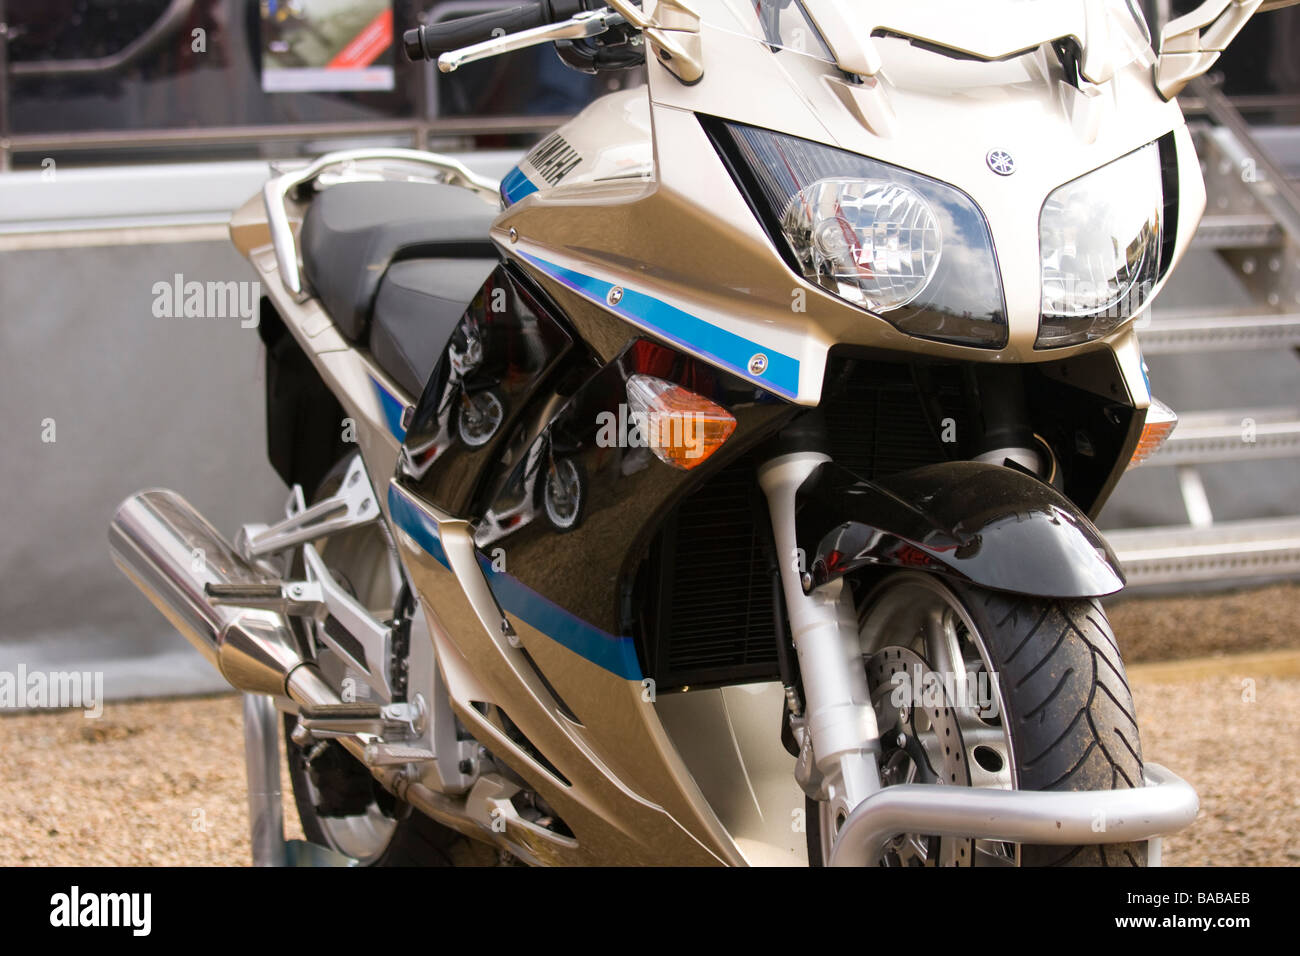 Yamaha bike front view - Stock Image